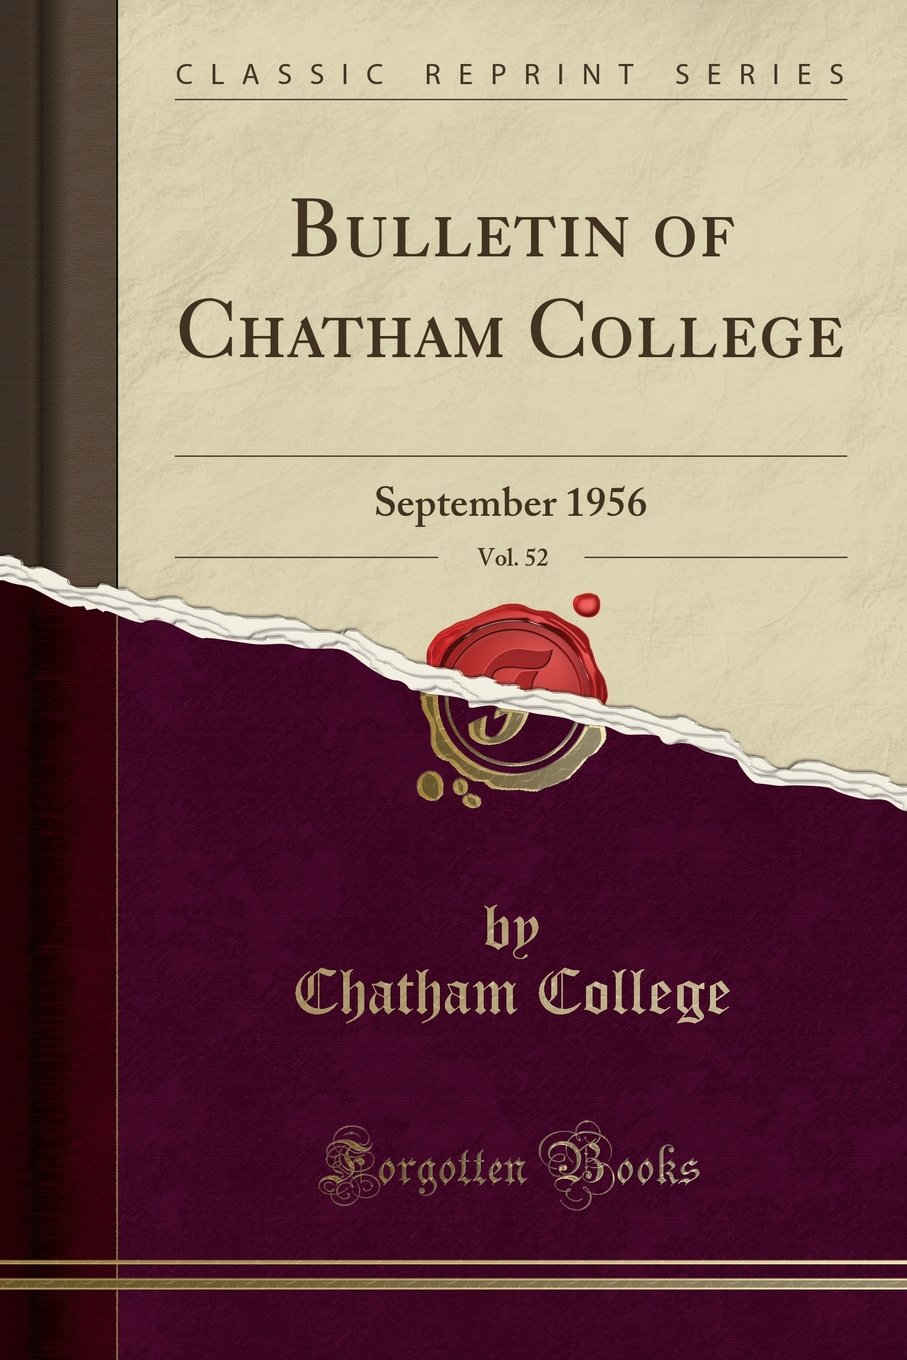 Bulletin of Chatham College, Vol. 52: September 1956 (Classic Reprint) PDF